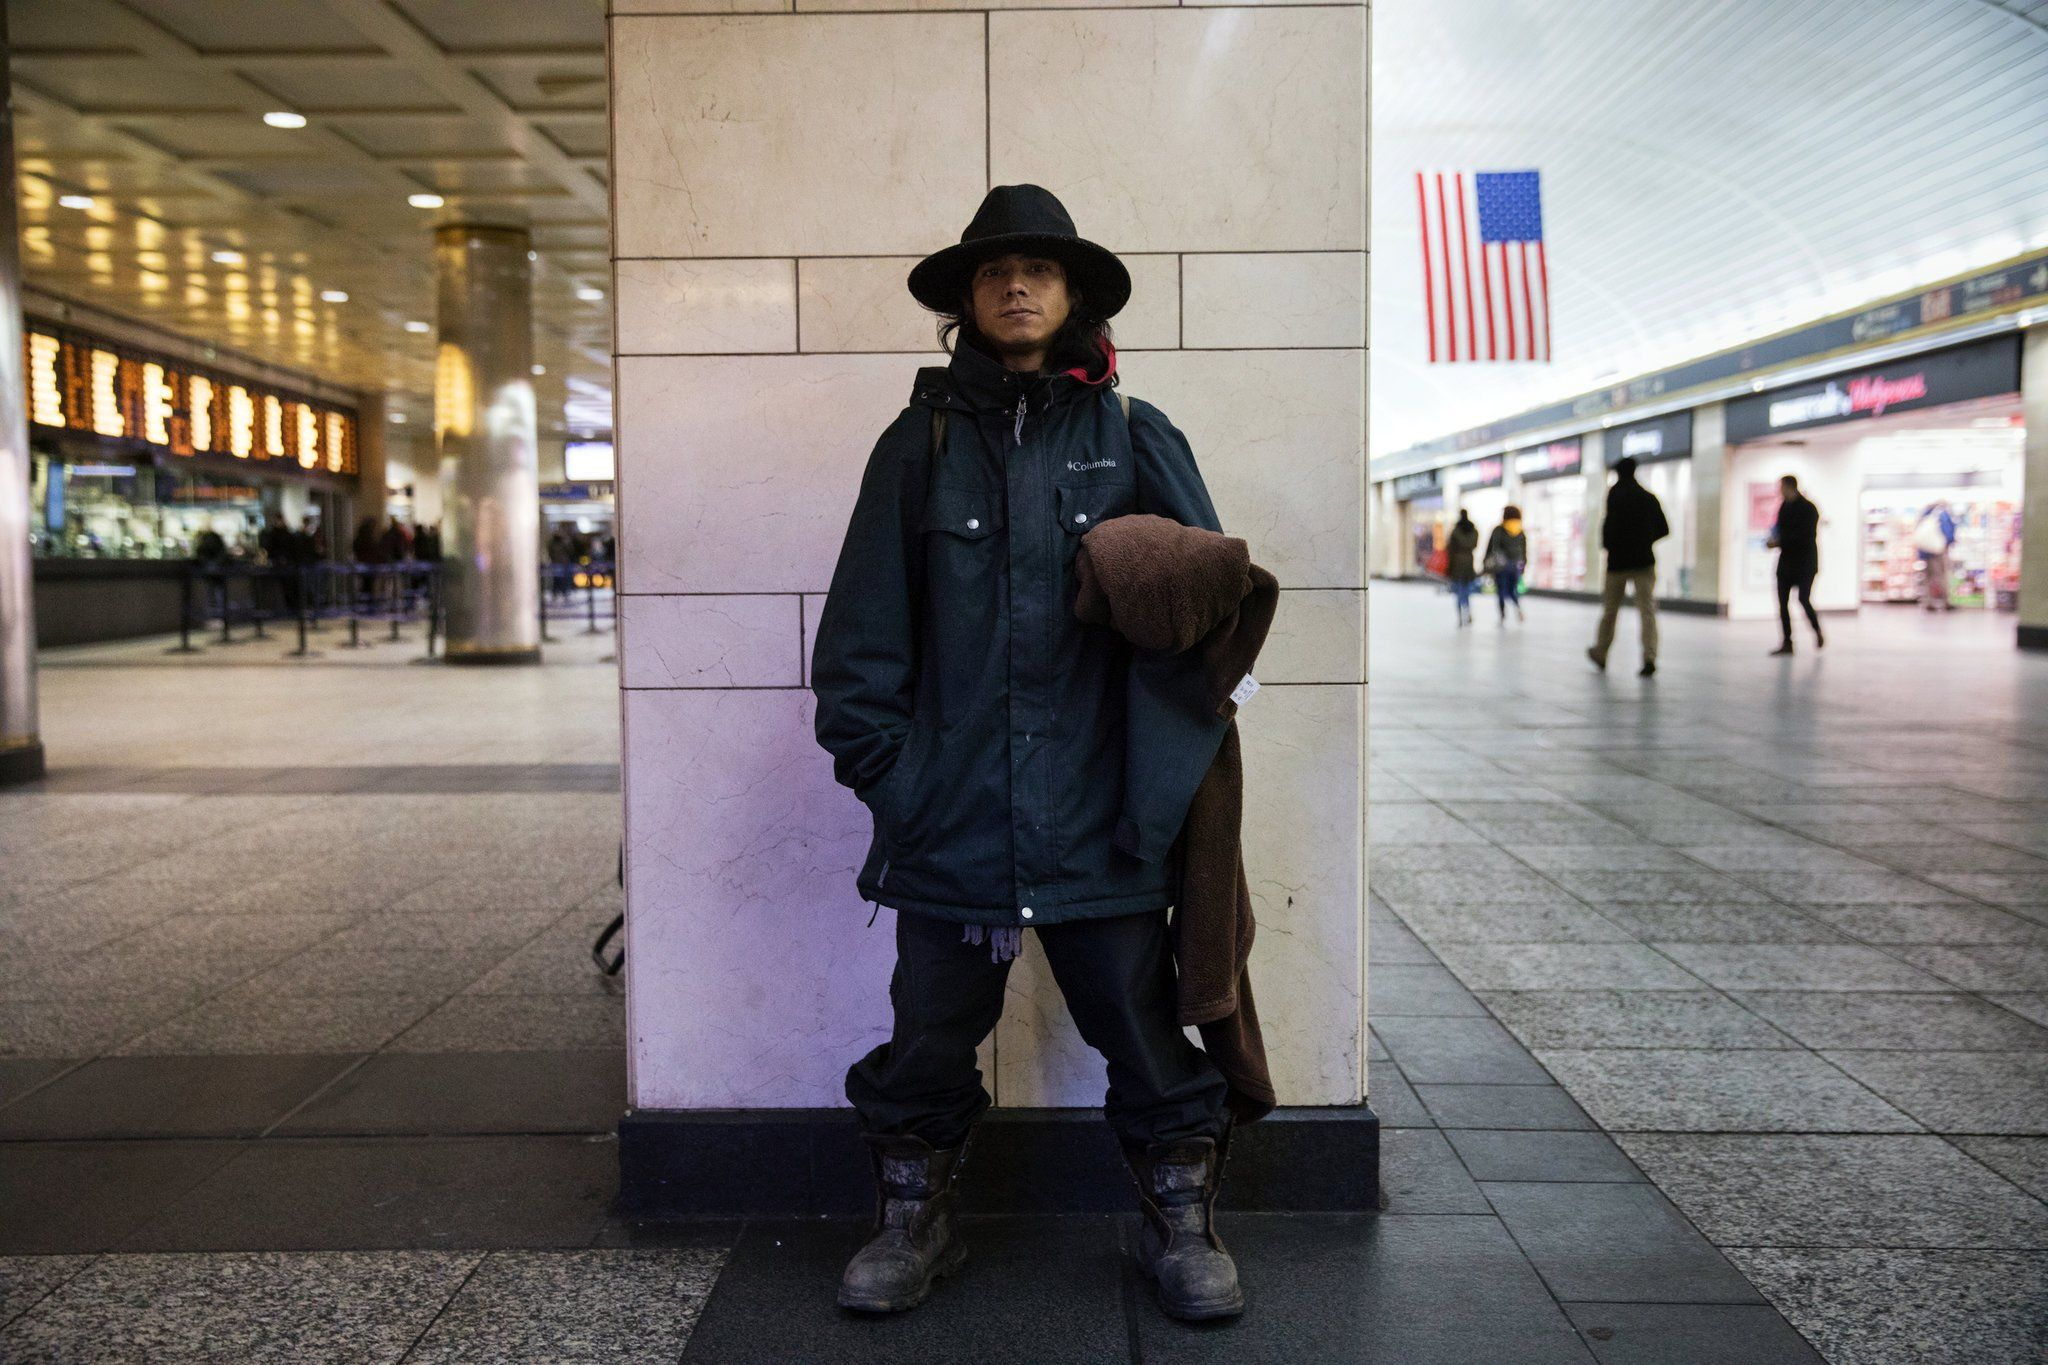 As homeless take refuge in subway more officers are sent